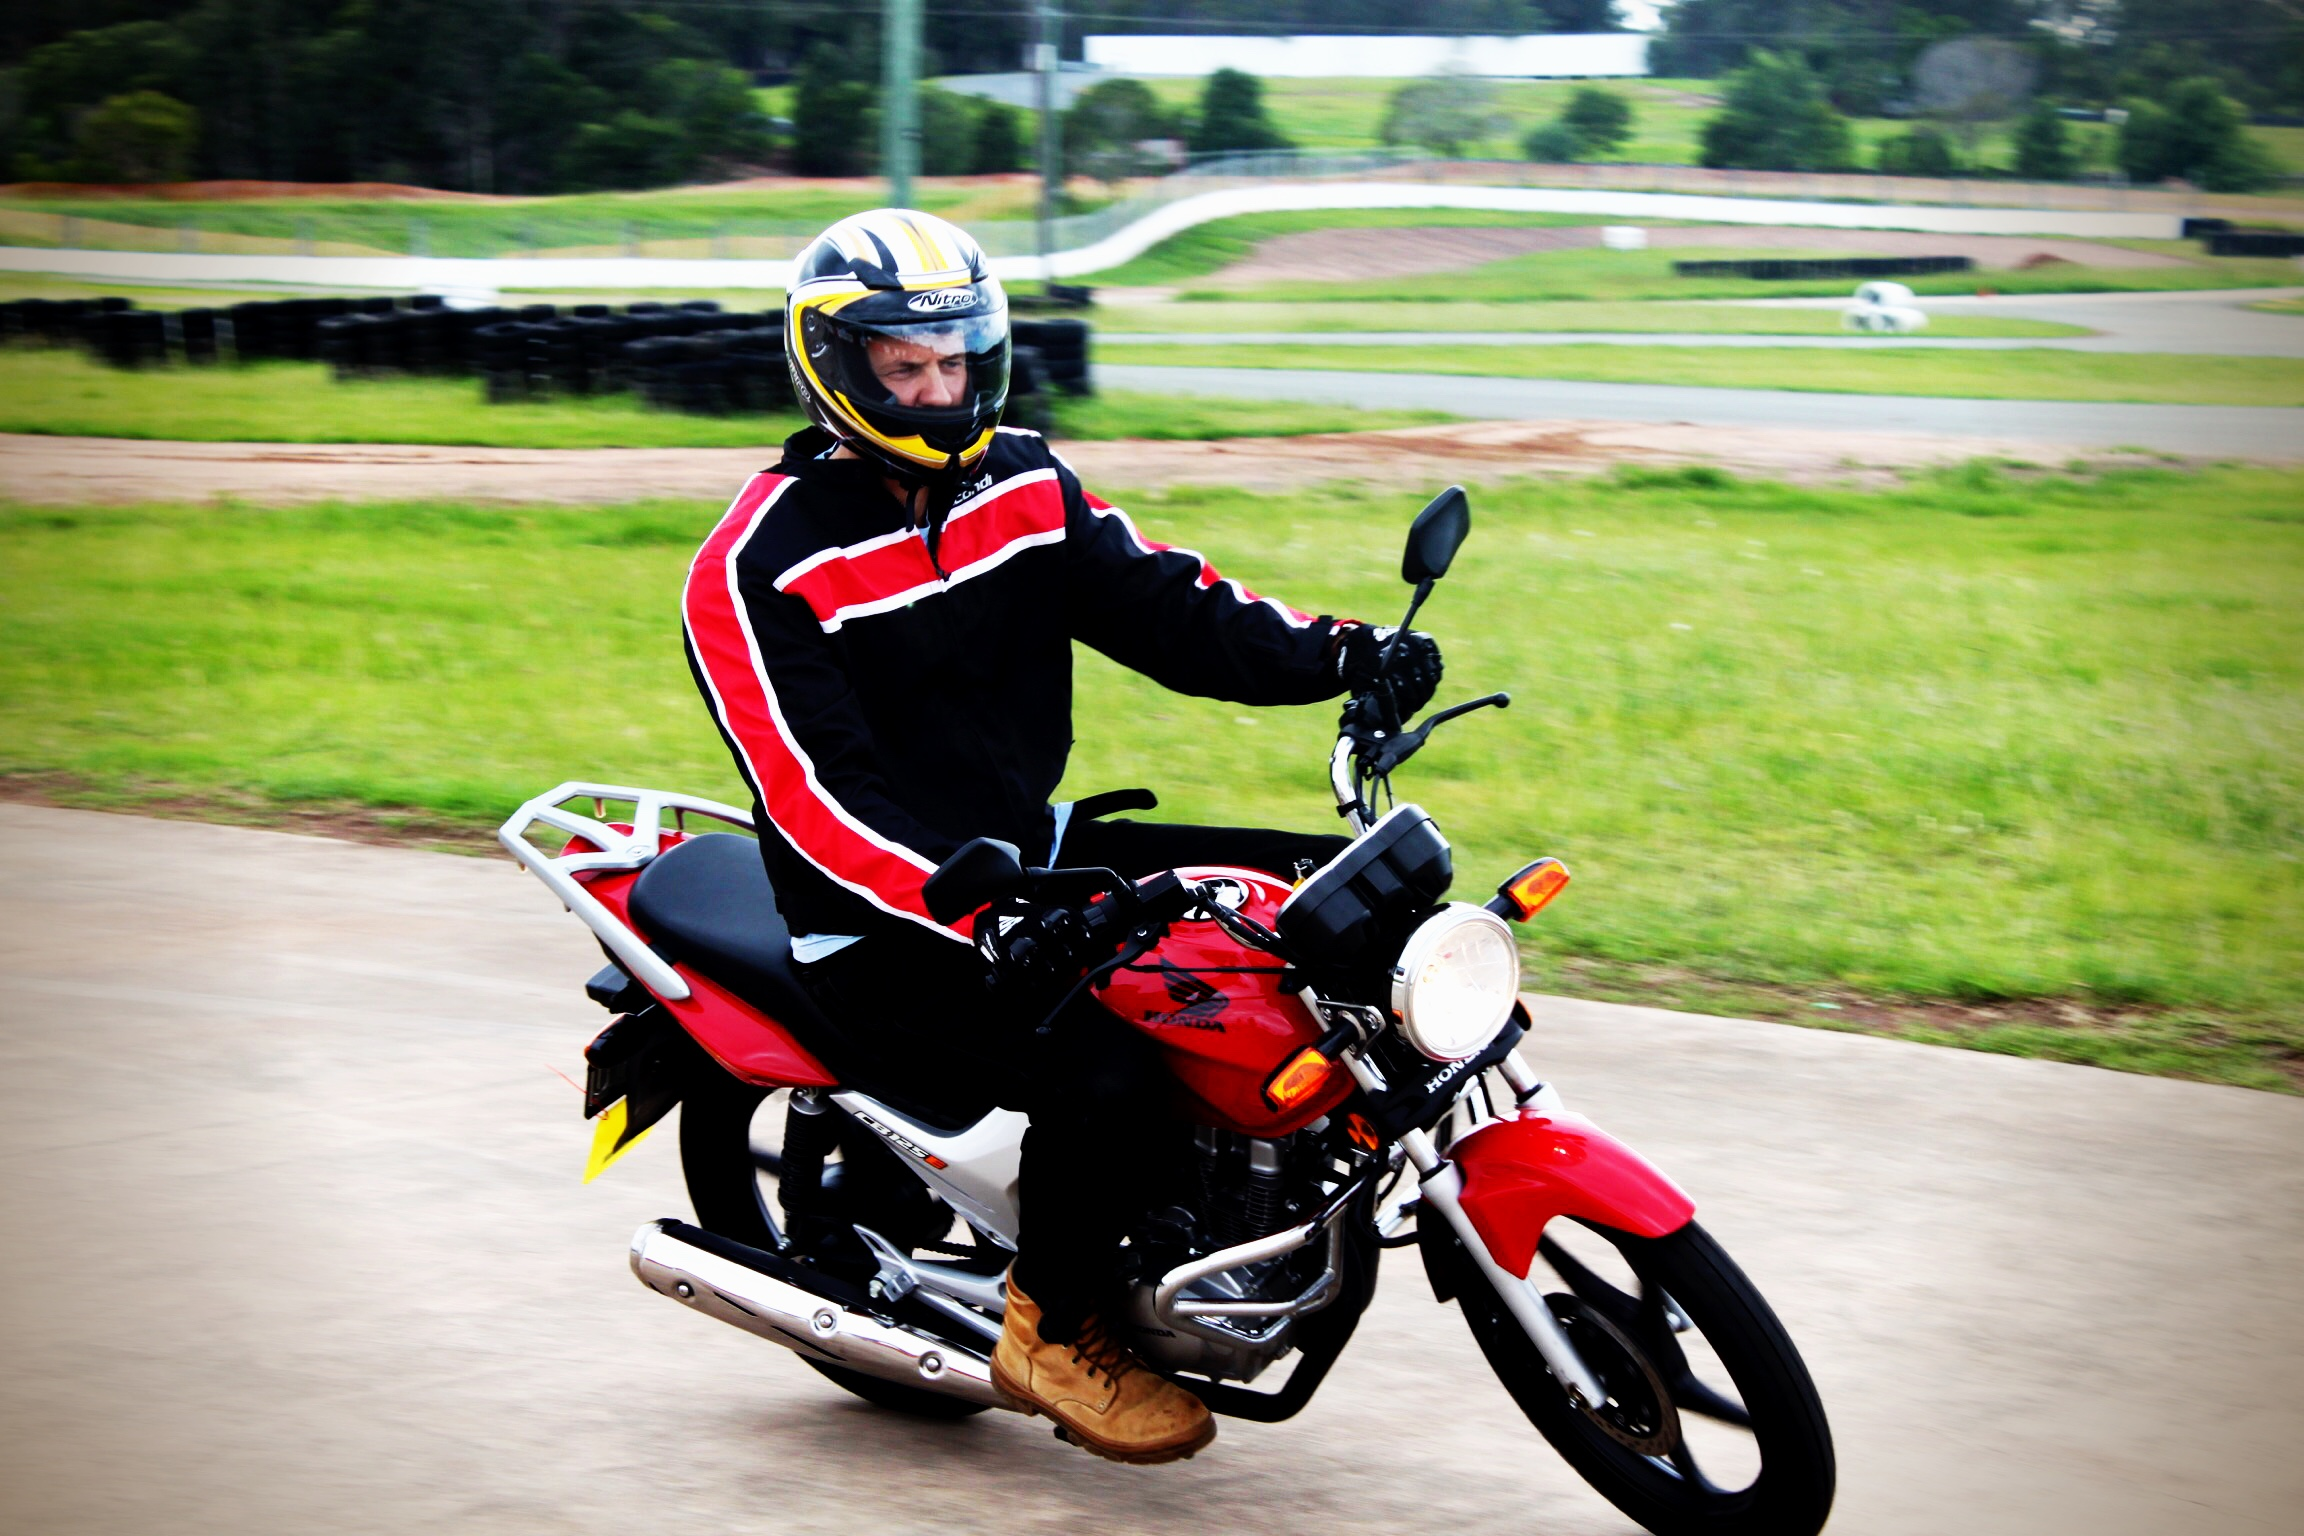 Get your motorcycle licence at Ian Watson's